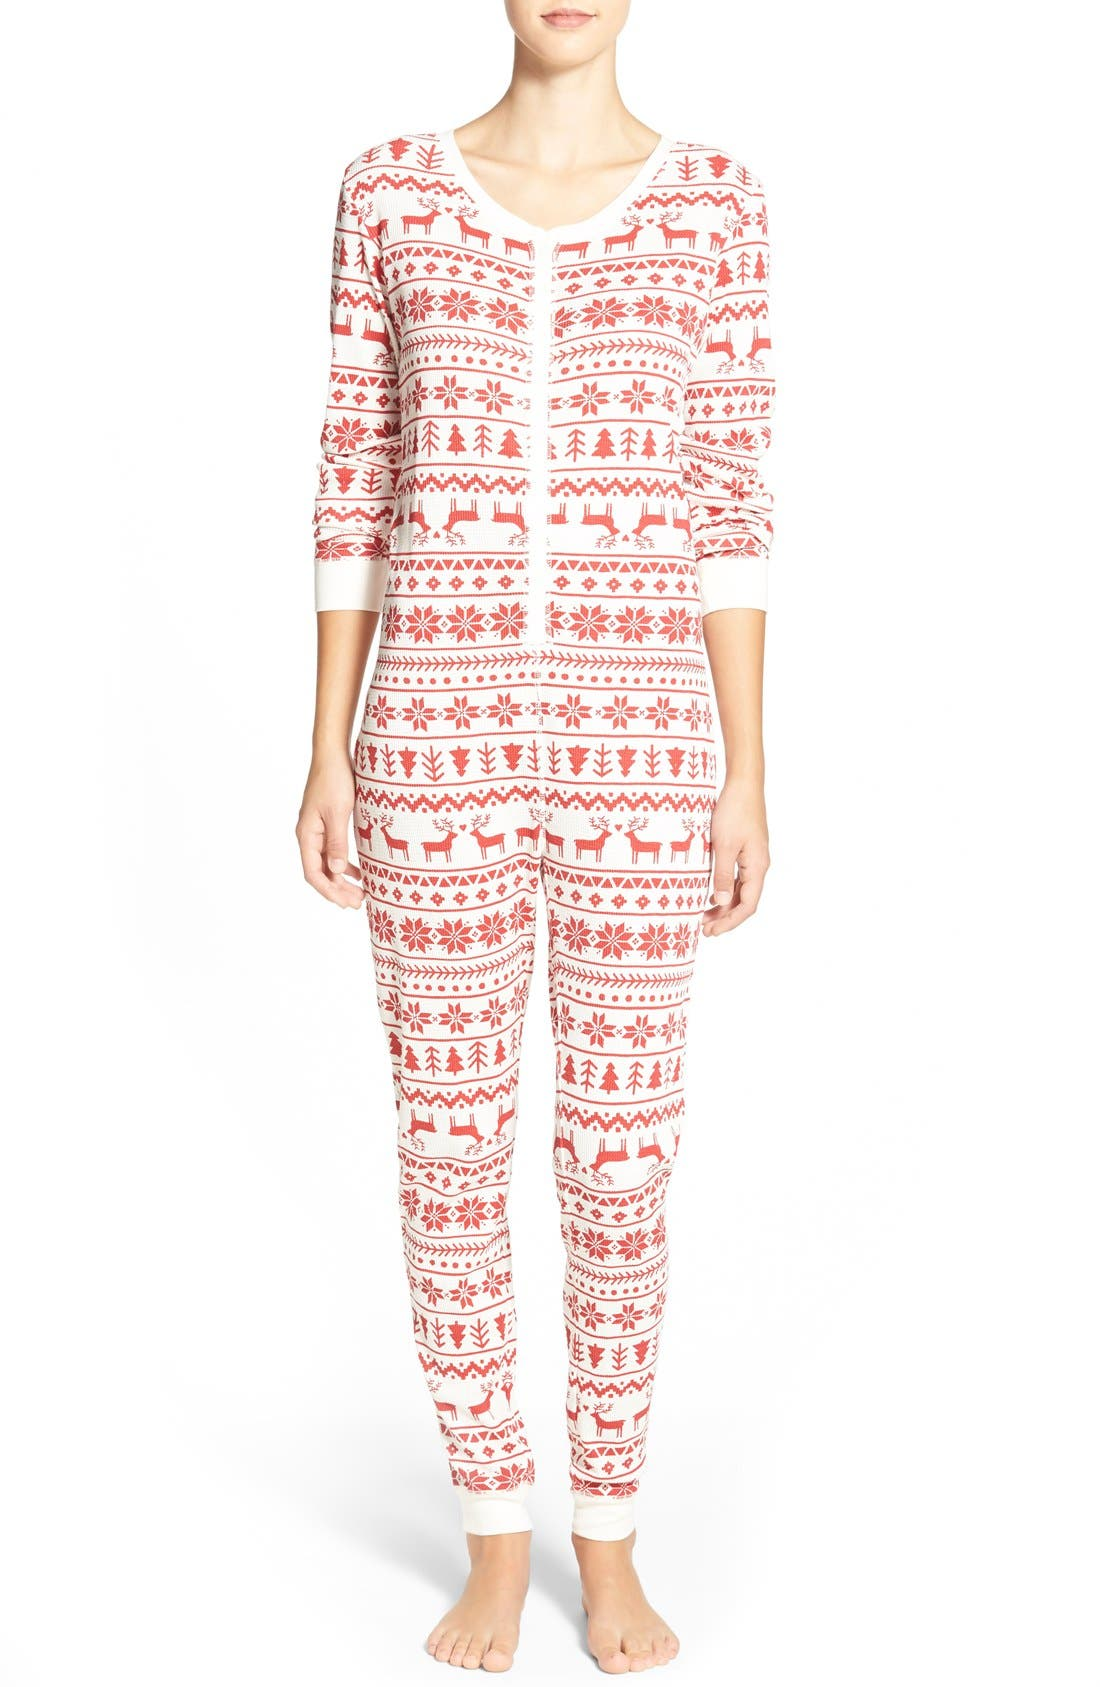 Alternate Image 1 Selected - BP. Undercover Holiday Thermal One-Piece Pajamas